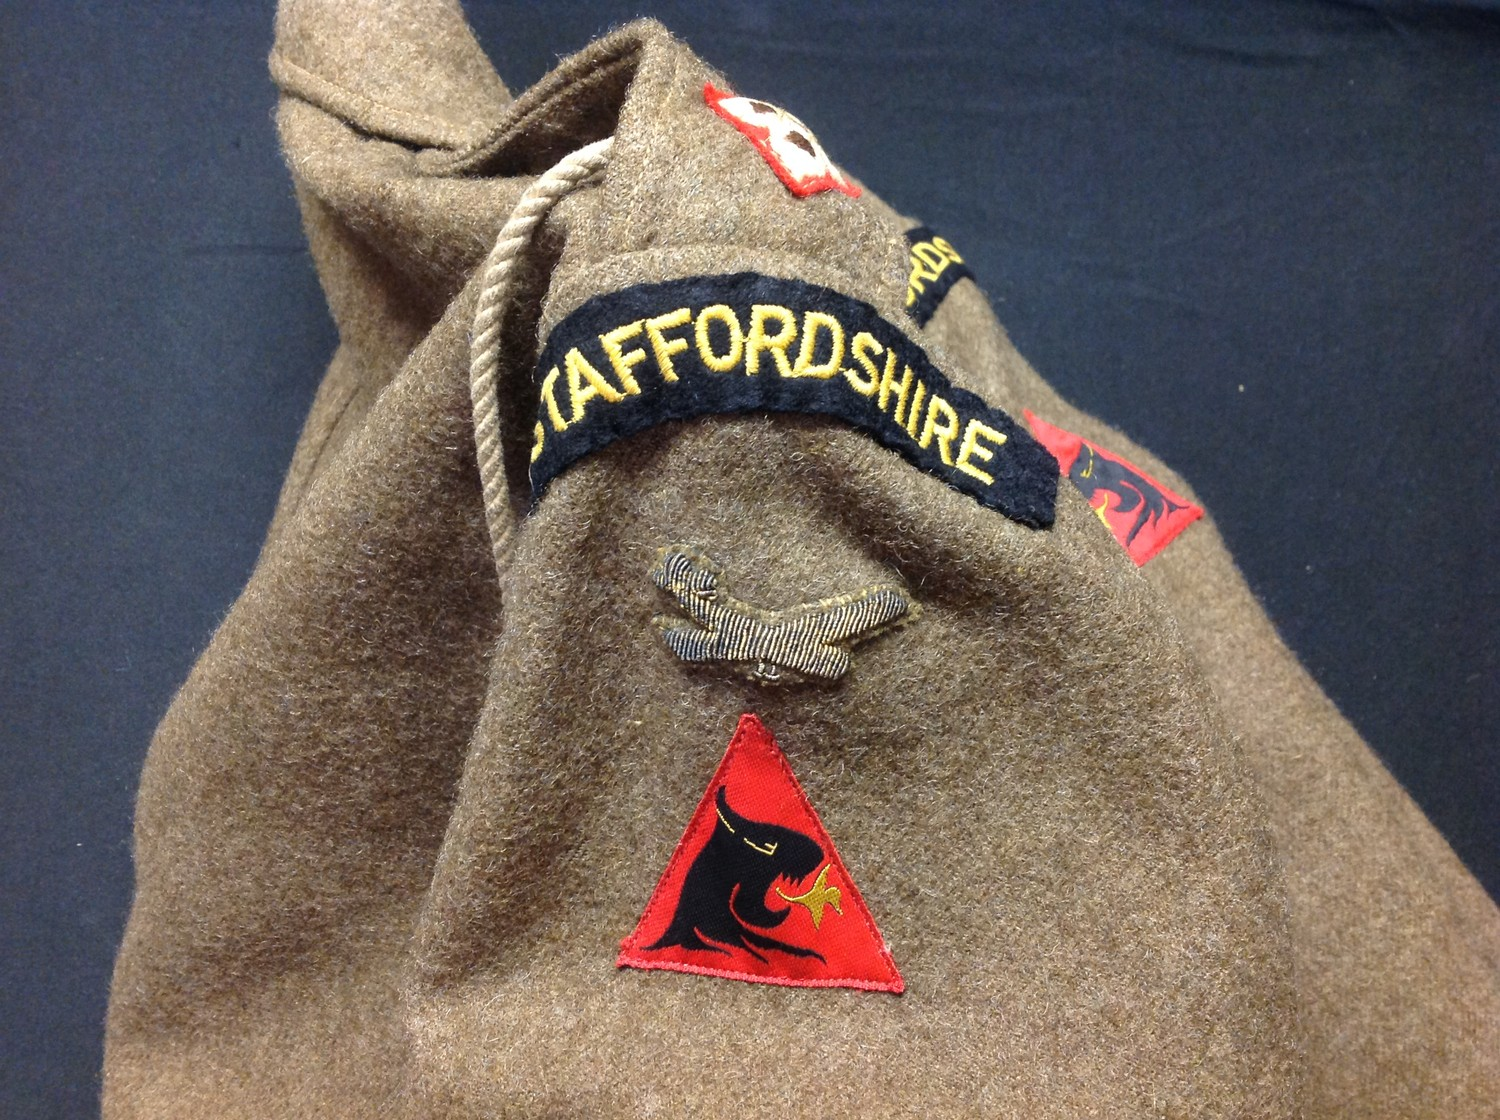 British Army Staffordshire Regiment 1949 Pattern Captains Battledress Blouse. Complete with all - Image 5 of 8